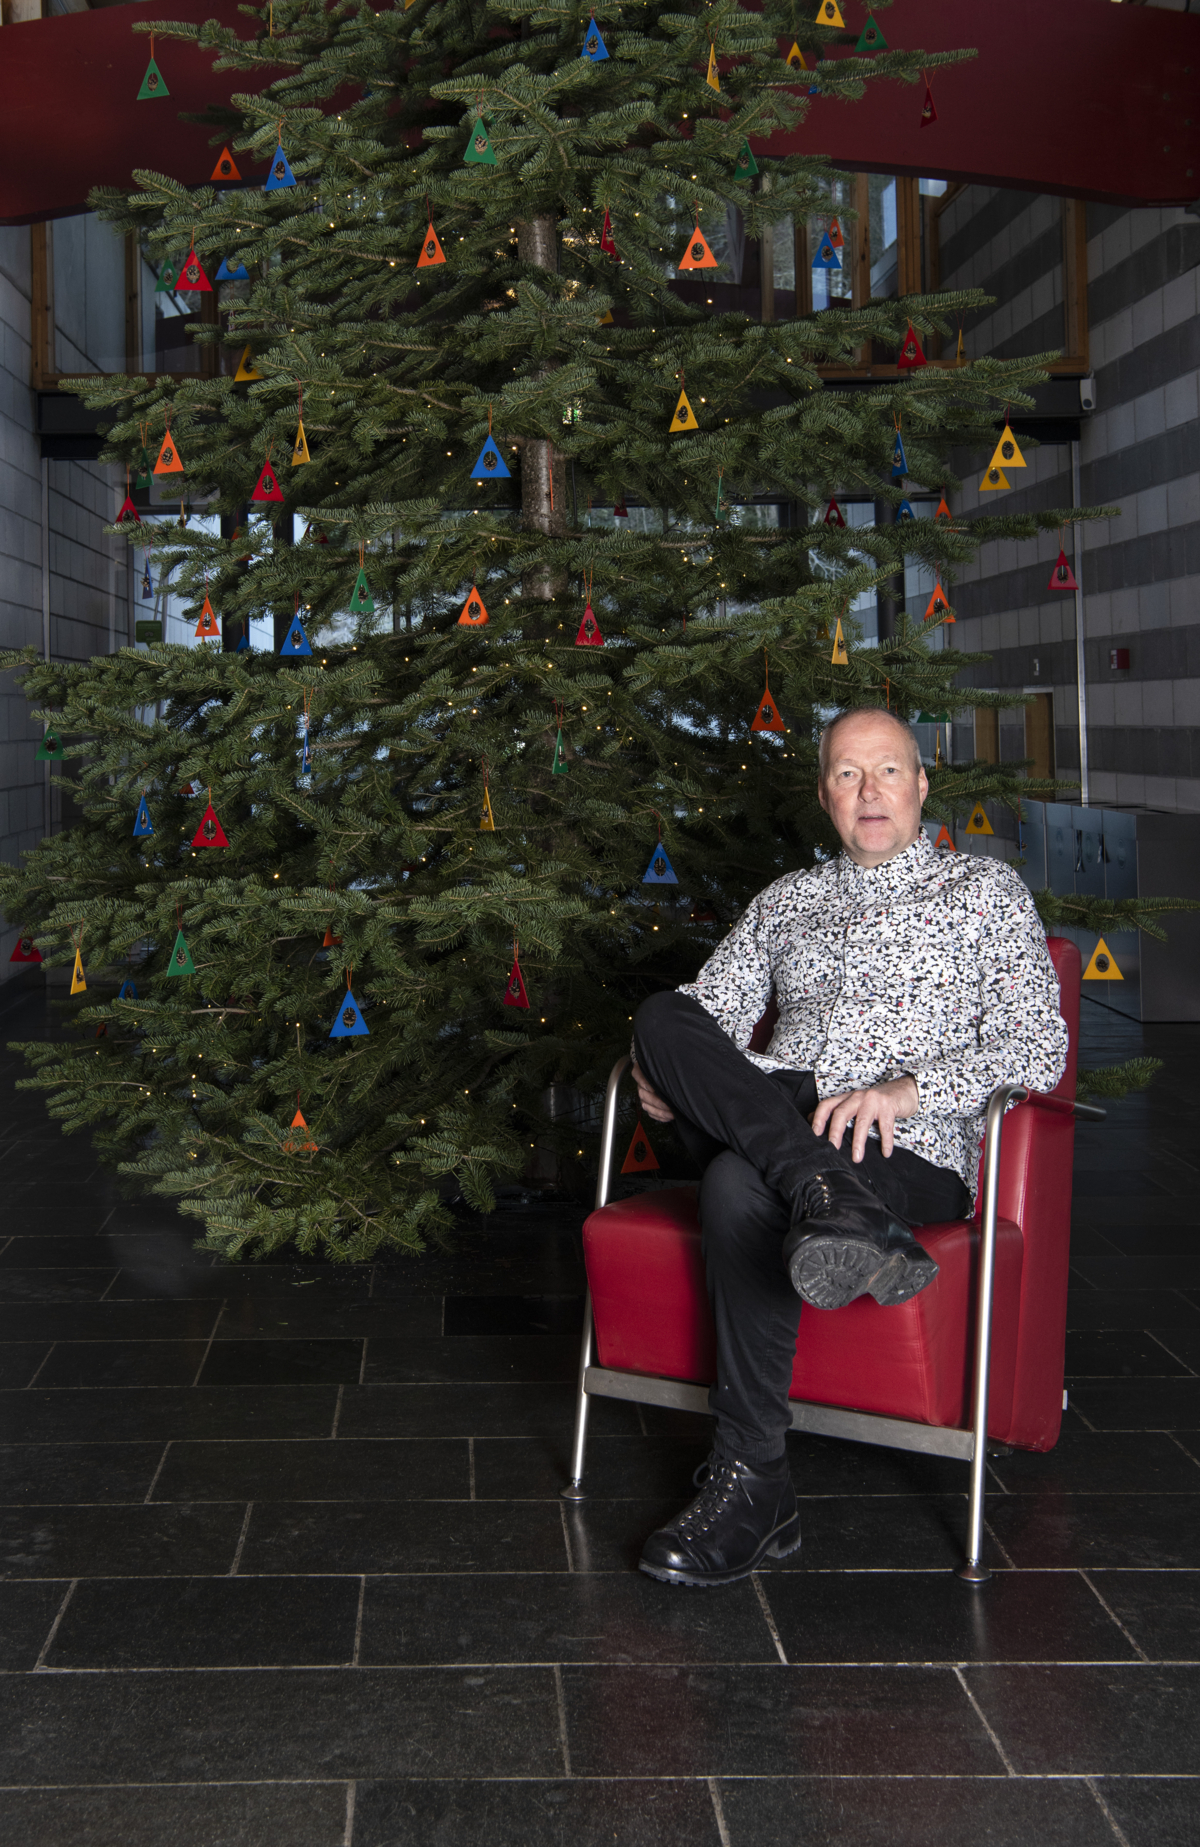 Artist Sigurd Bronger in a red chair in front of the Christmas tree with colorful triangles with pine cones.